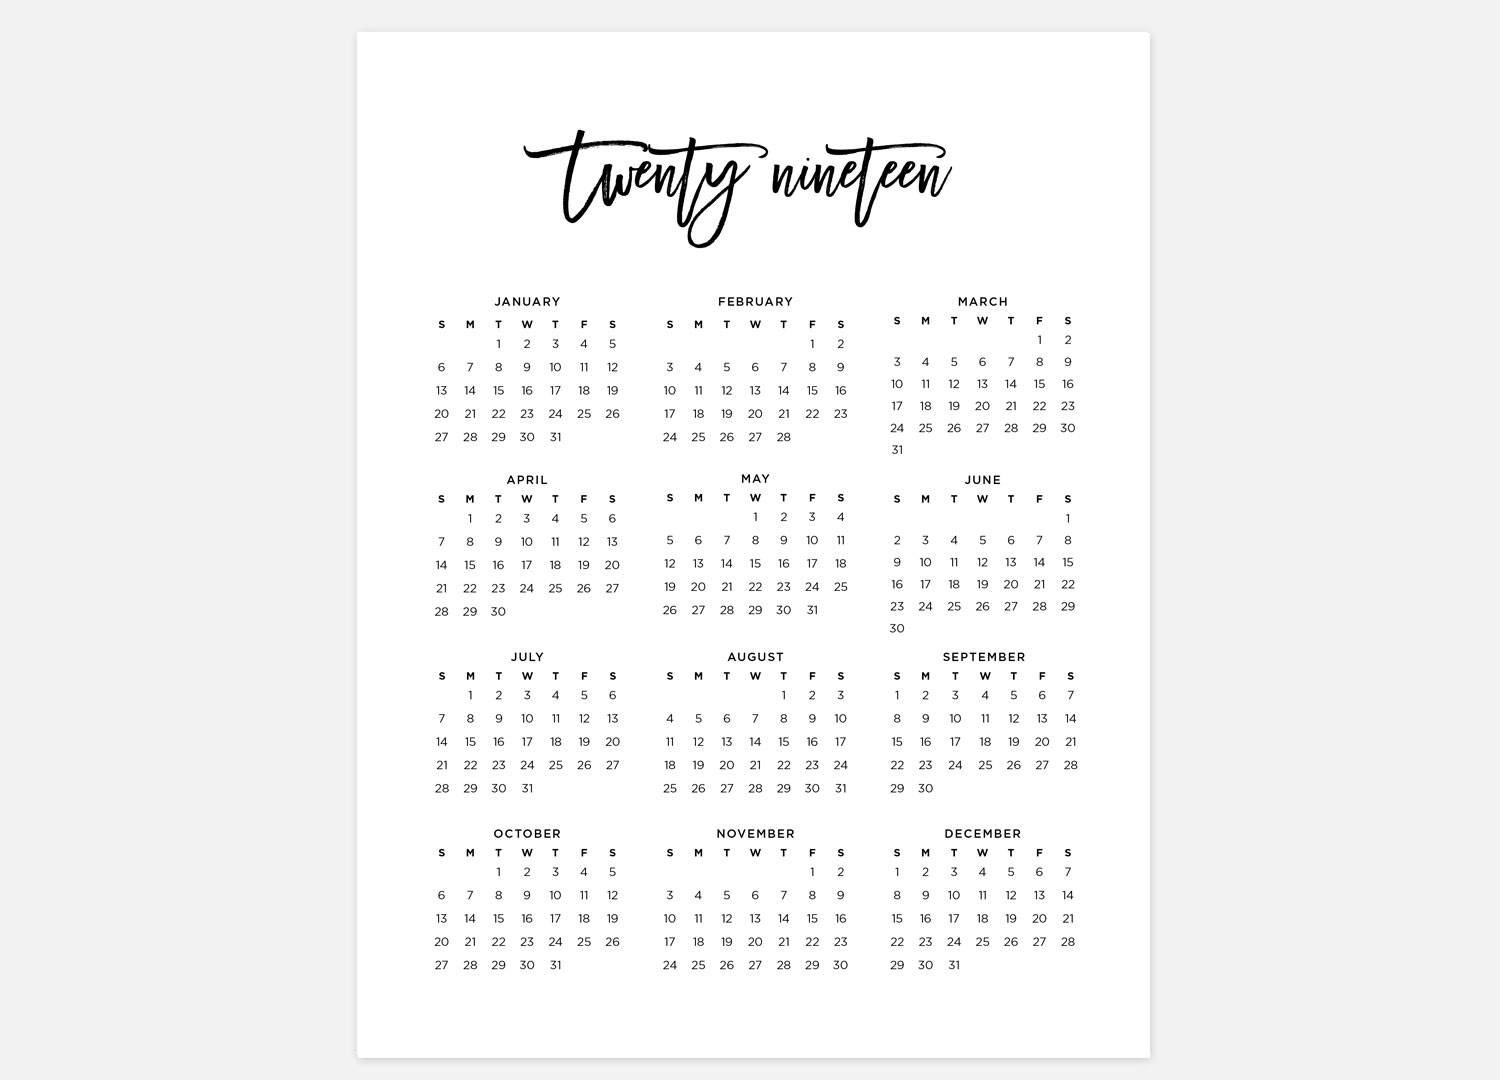 2019 Calendar Simple Calendar 2019 Year Calendar 2019 | Etsy Calendar 2019 Full Year